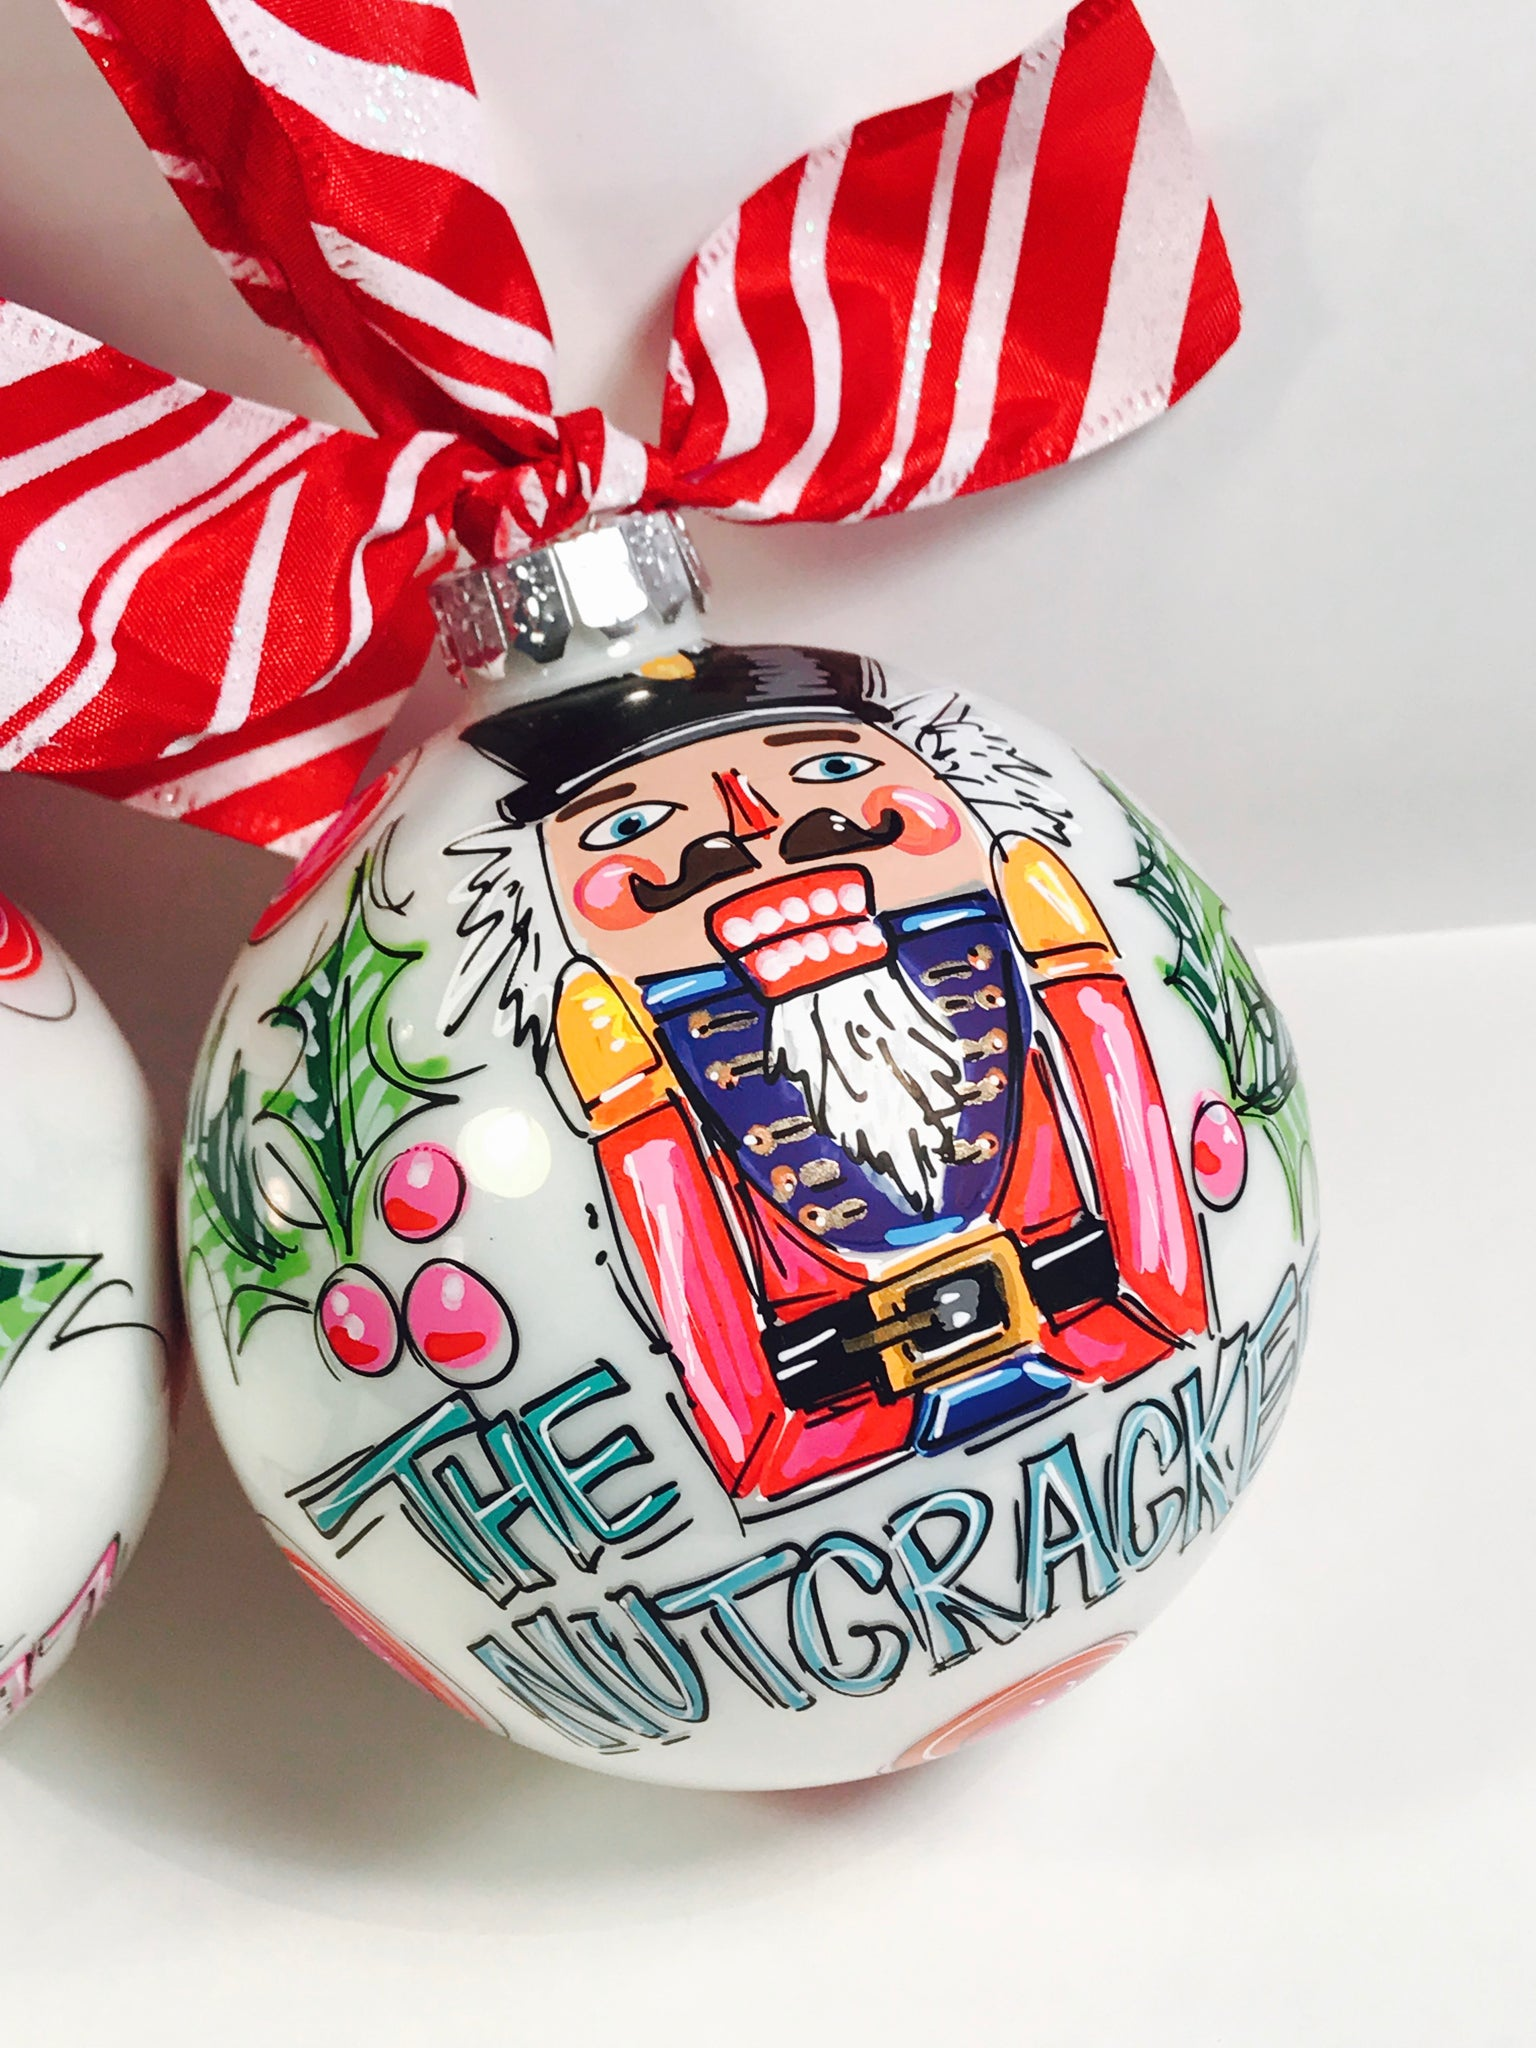 Hand painted nutcracker ornament